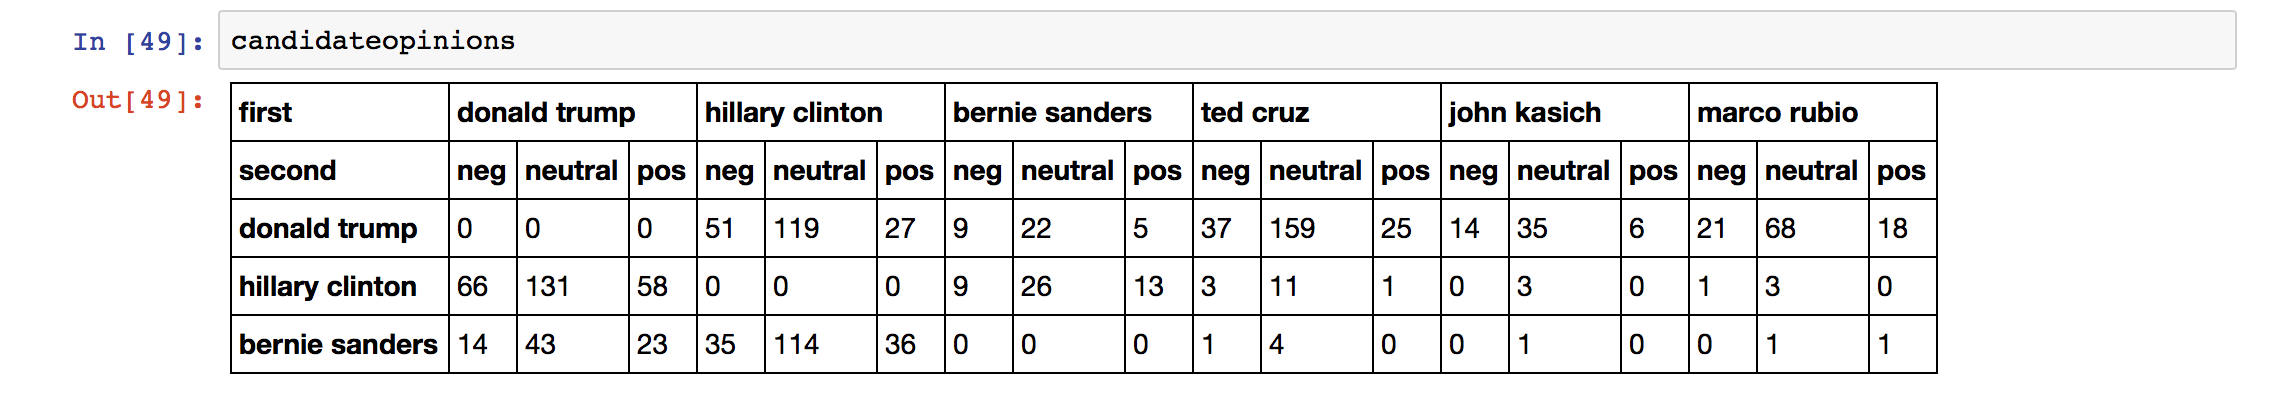 candidate to candidate sentiment table